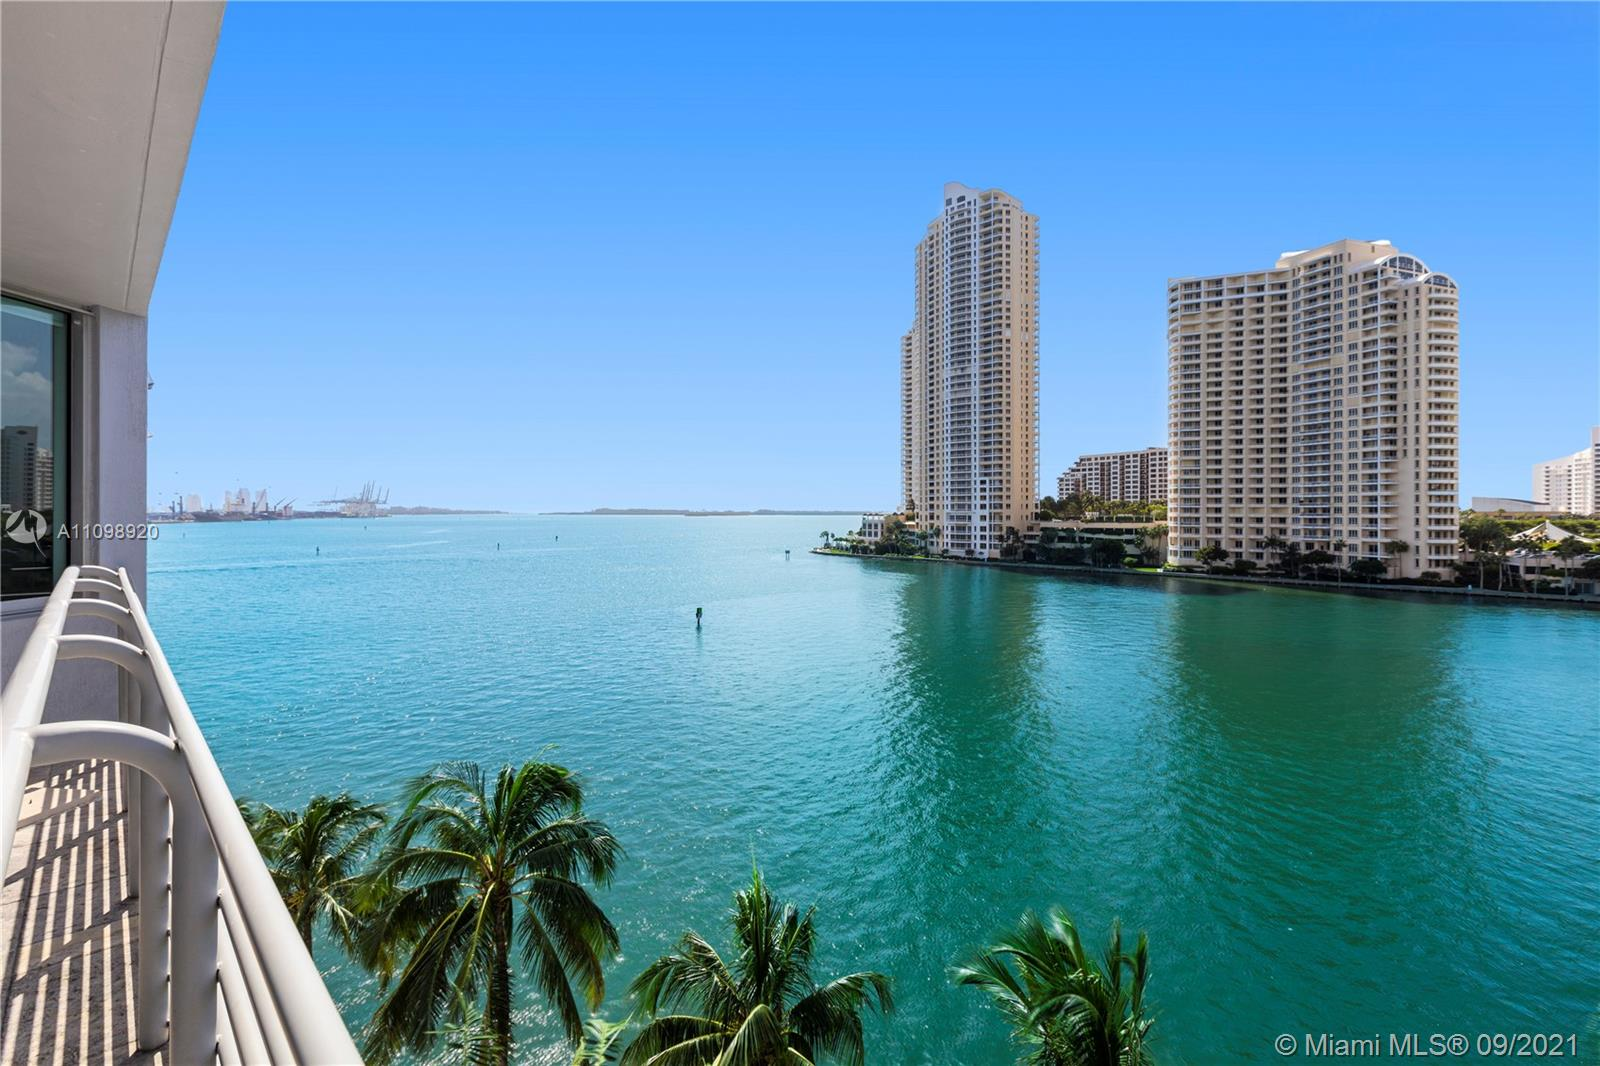 Beautiful 2 bedrooms 2 baths split plan condo with direct views of Biscayne Bay, Miami River and Brickell Skyline. Units comes fully furnished w/ tile floors, Italian kitchen cabinets, granite countertops, stainless steel appliances, marble bath tops. Bldg amenities incl: 2 pools, Jacuzzi, 2 Party Rooms, 2 Fitness Centers, Conf. Rm., Convenience Store, and 24 hrs security, valet, and concierge. Centrally located within minutes to SoBe, Grove, Gables, Key Biscayne, Design District, and Airport. Sales office in Bldg.